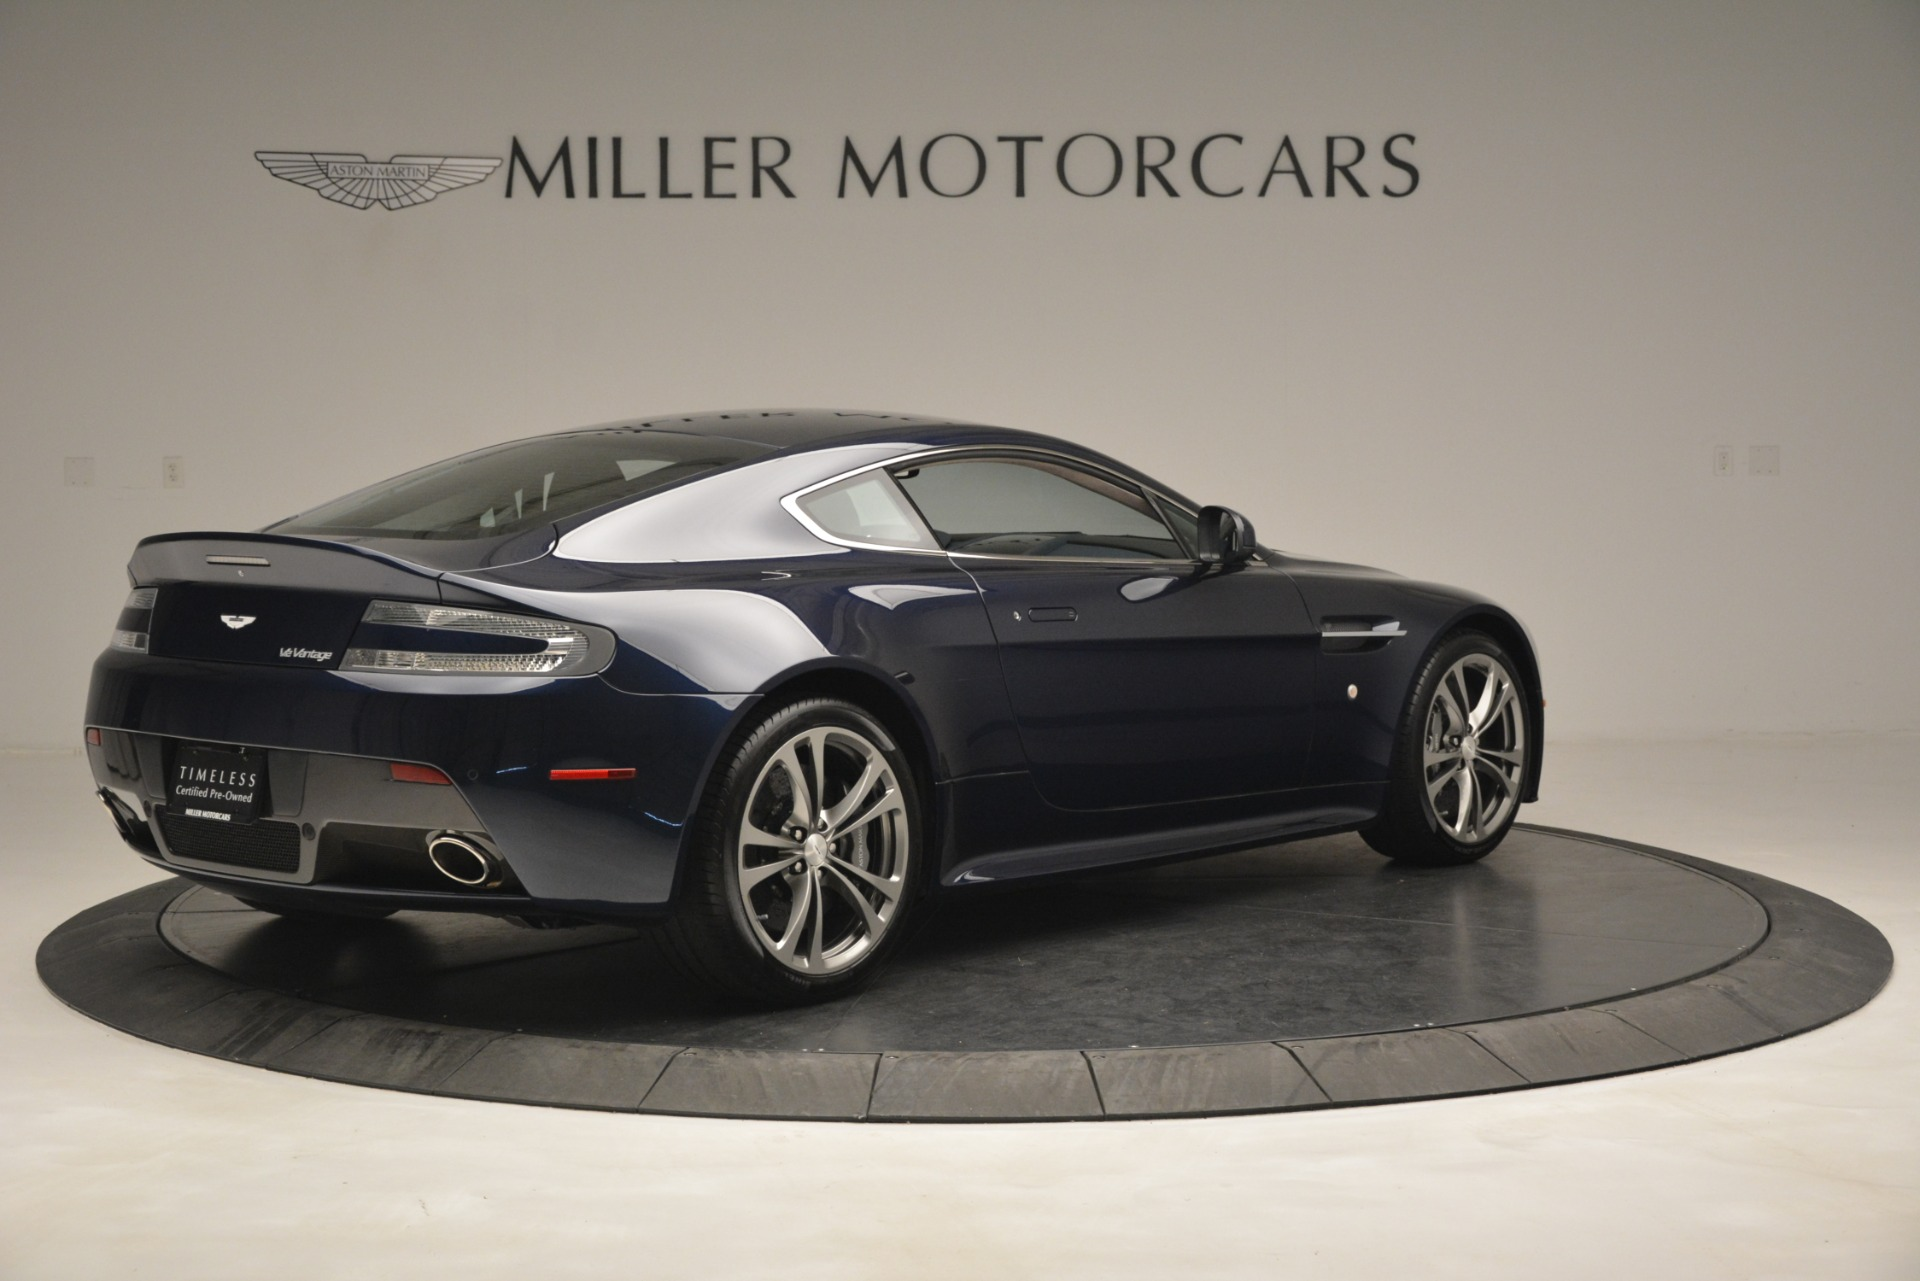 Used 2012 Aston Martin V12 Vantage  For Sale In Westport, CT 3046_p8